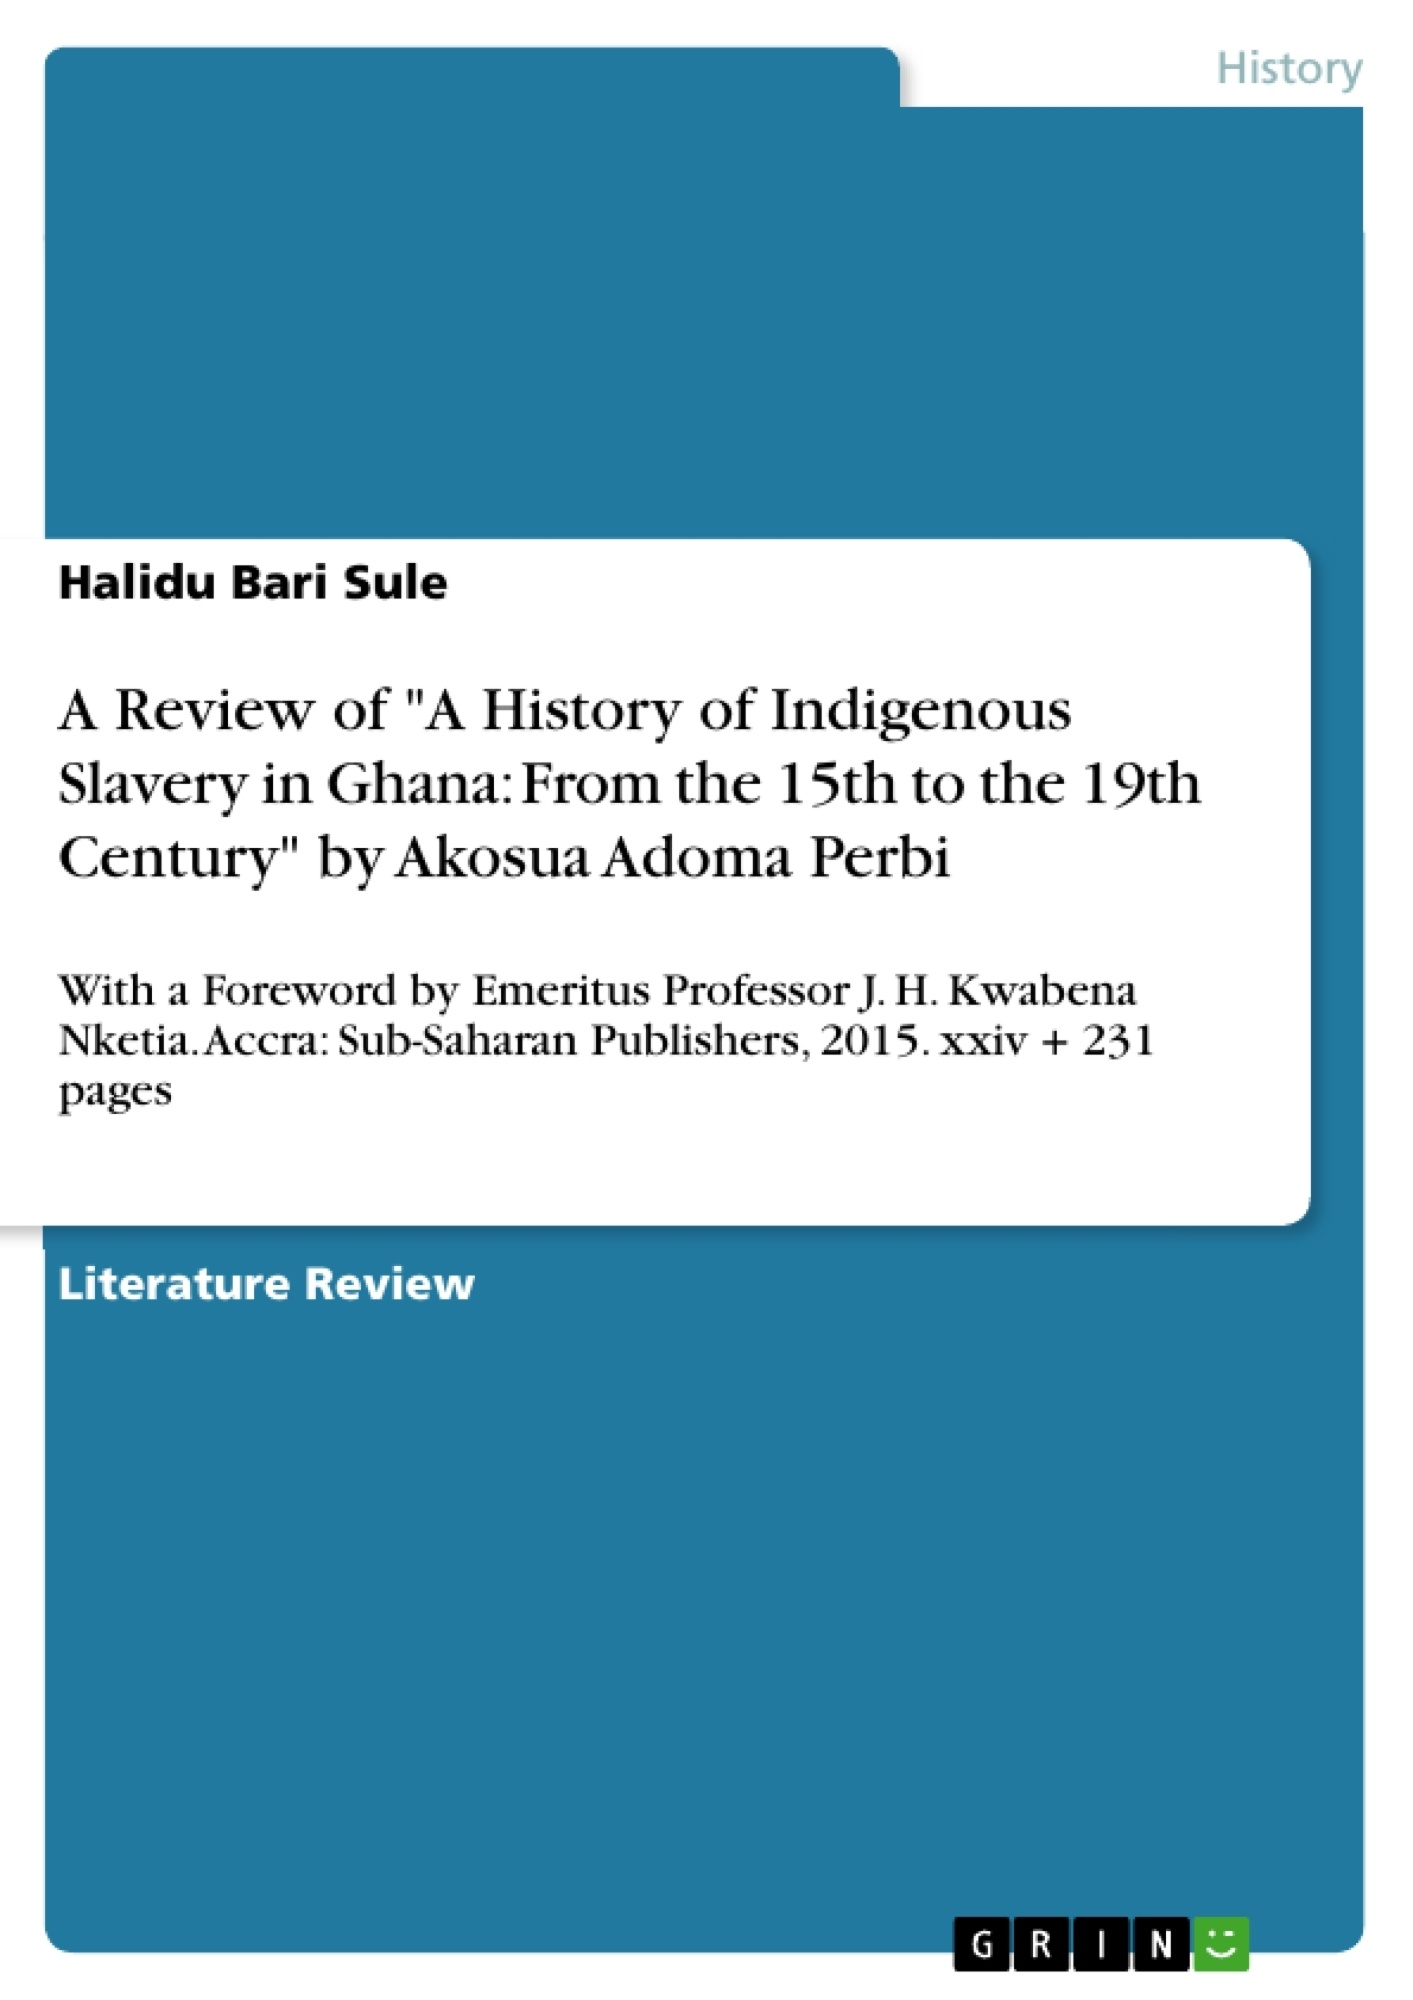 """Title: A Review of """"A History of Indigenous Slavery in Ghana: From the 15th to the 19th Century"""" by Akosua Adoma Perbi"""